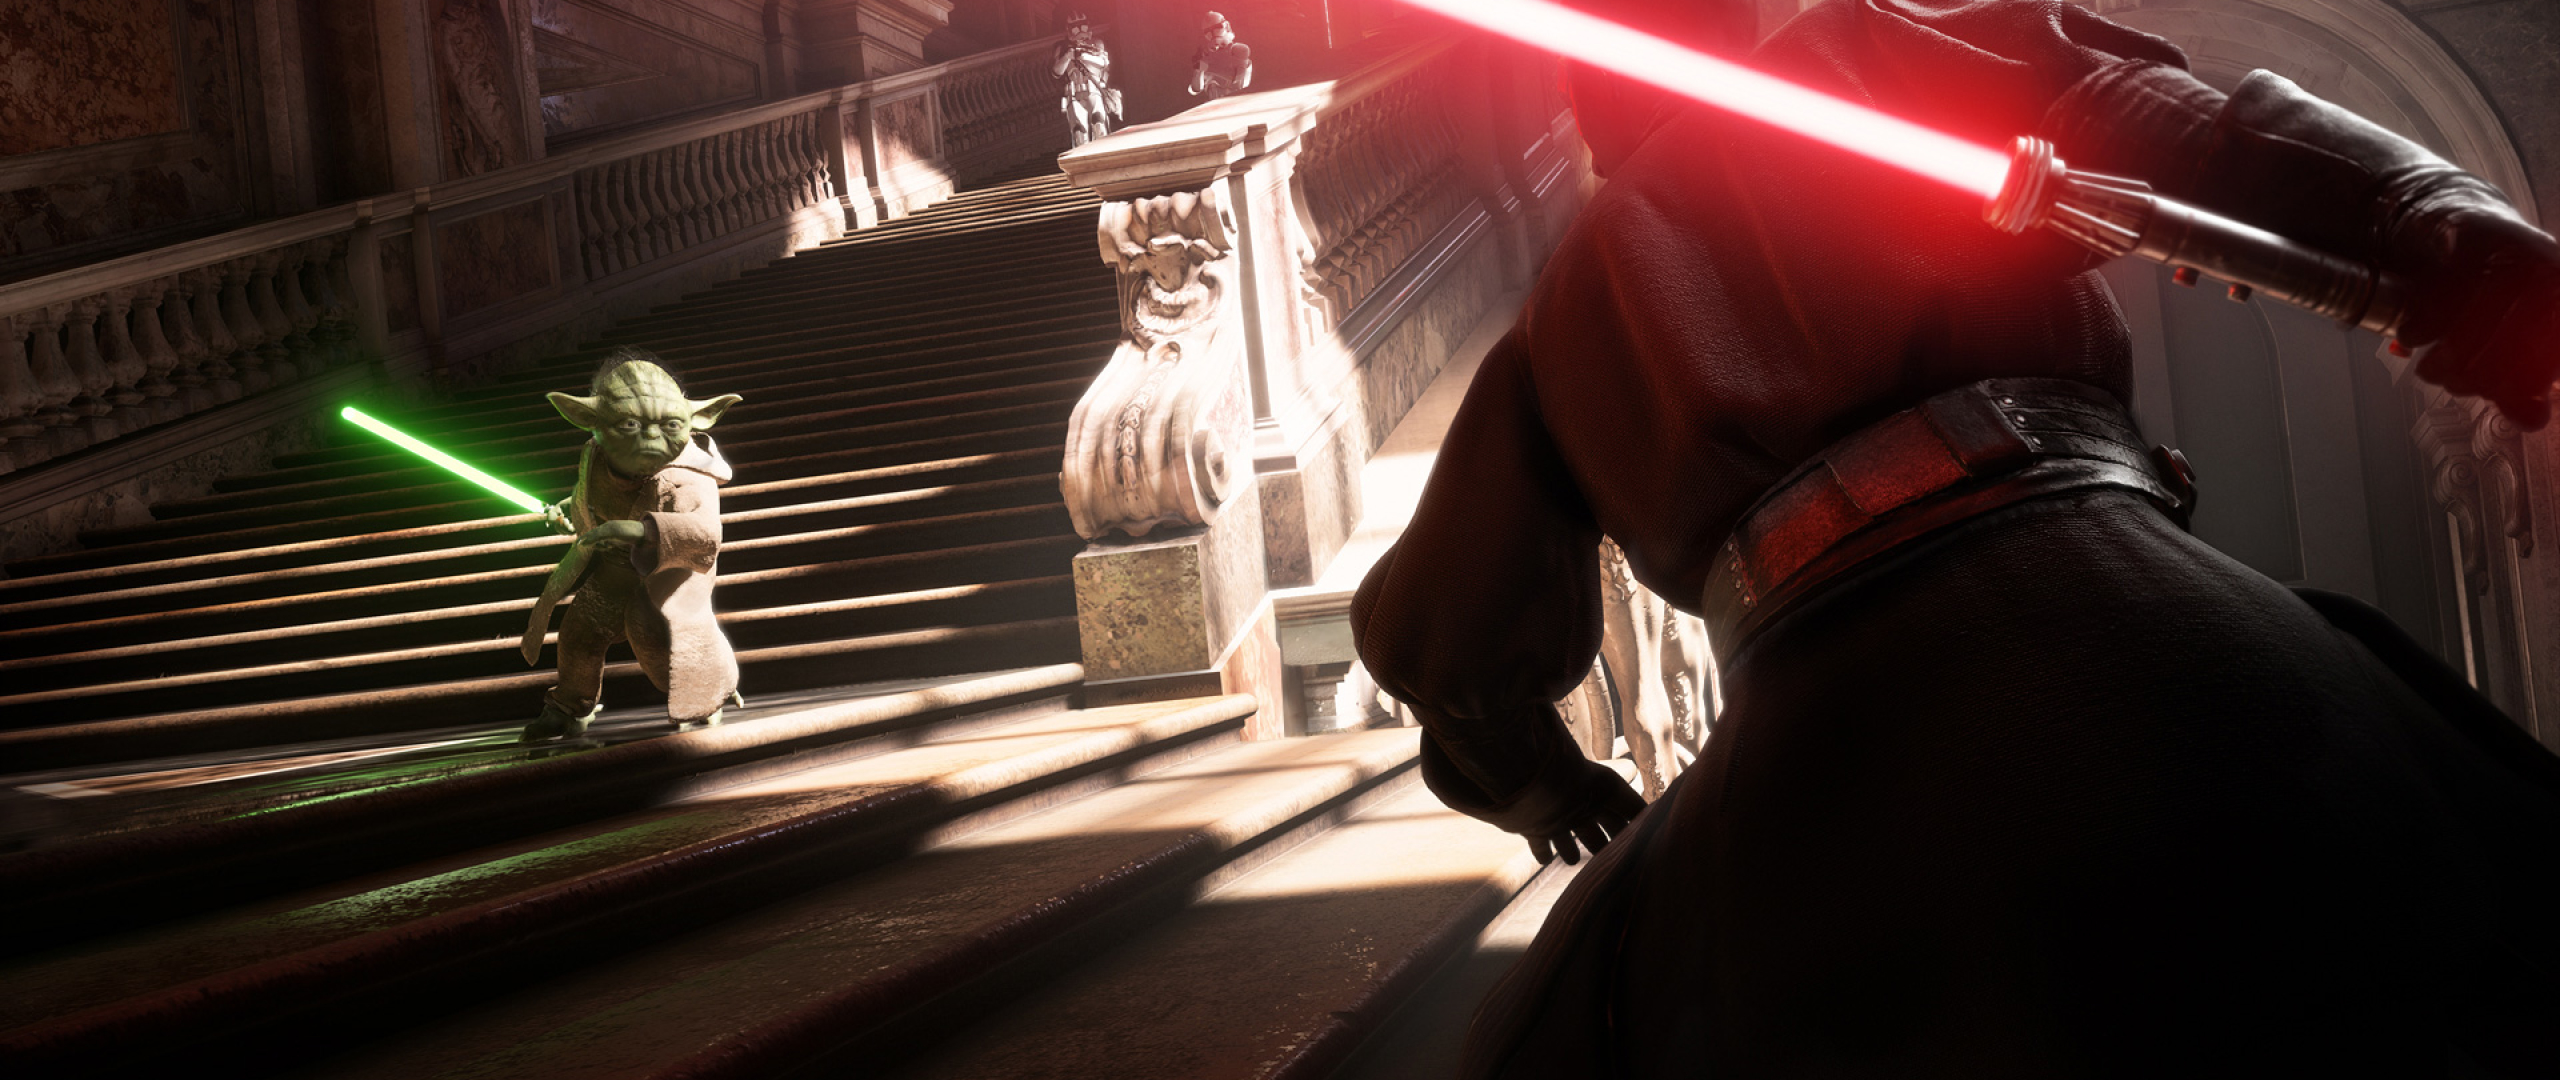 2560x1080 Yoda Vs Darth Vader Star Wars Battlefront 2 2560x1080 Resolution Wallpaper Hd Games 4k Wallpapers Images Photos And Background